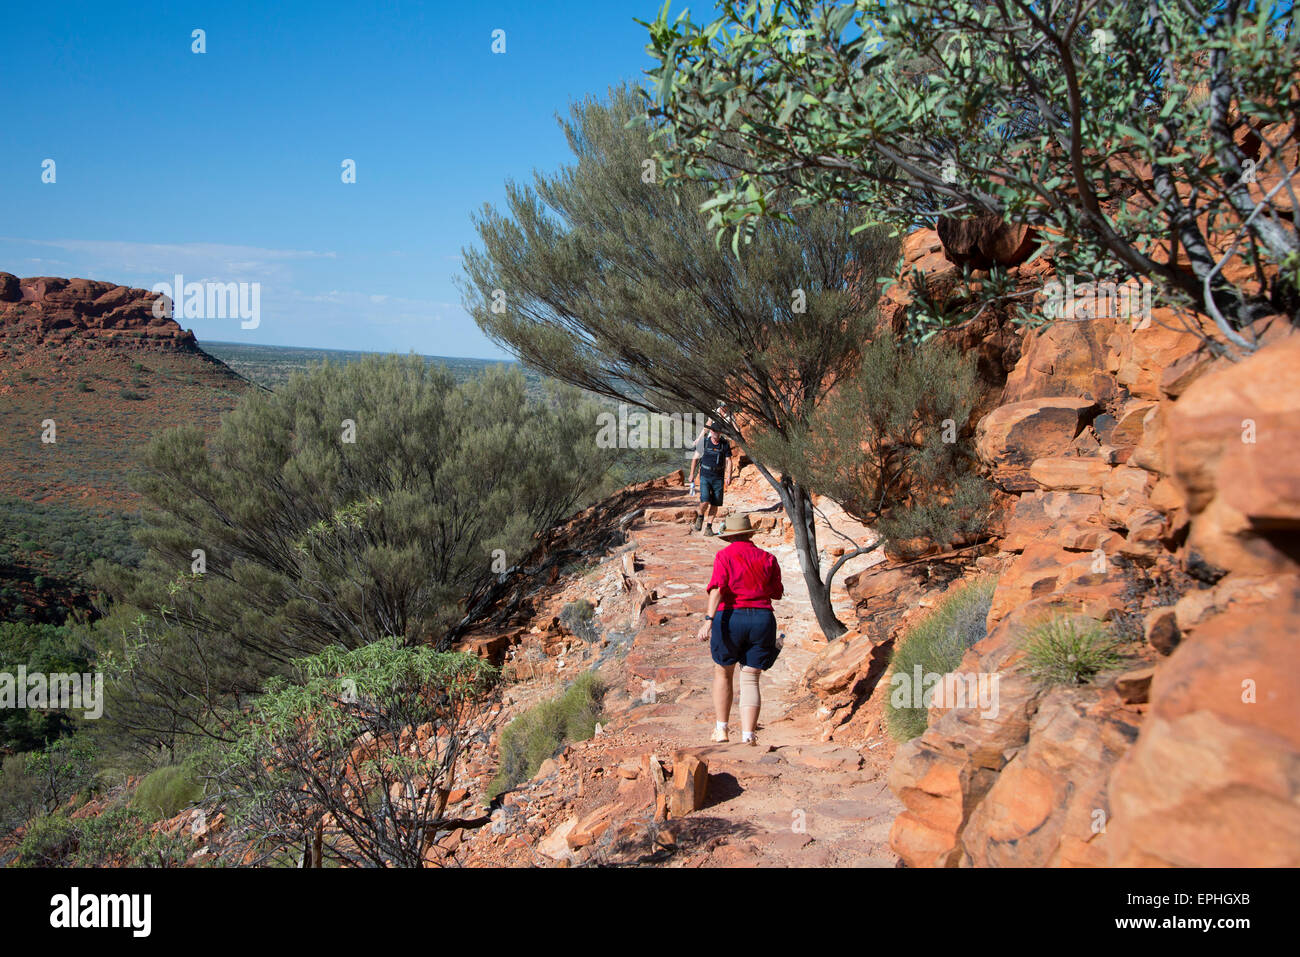 Australia, NT, Watarrka National Park. Kings Canyon, Rim Walk. Challenging 6k hike around the canyon rim. - Stock Image